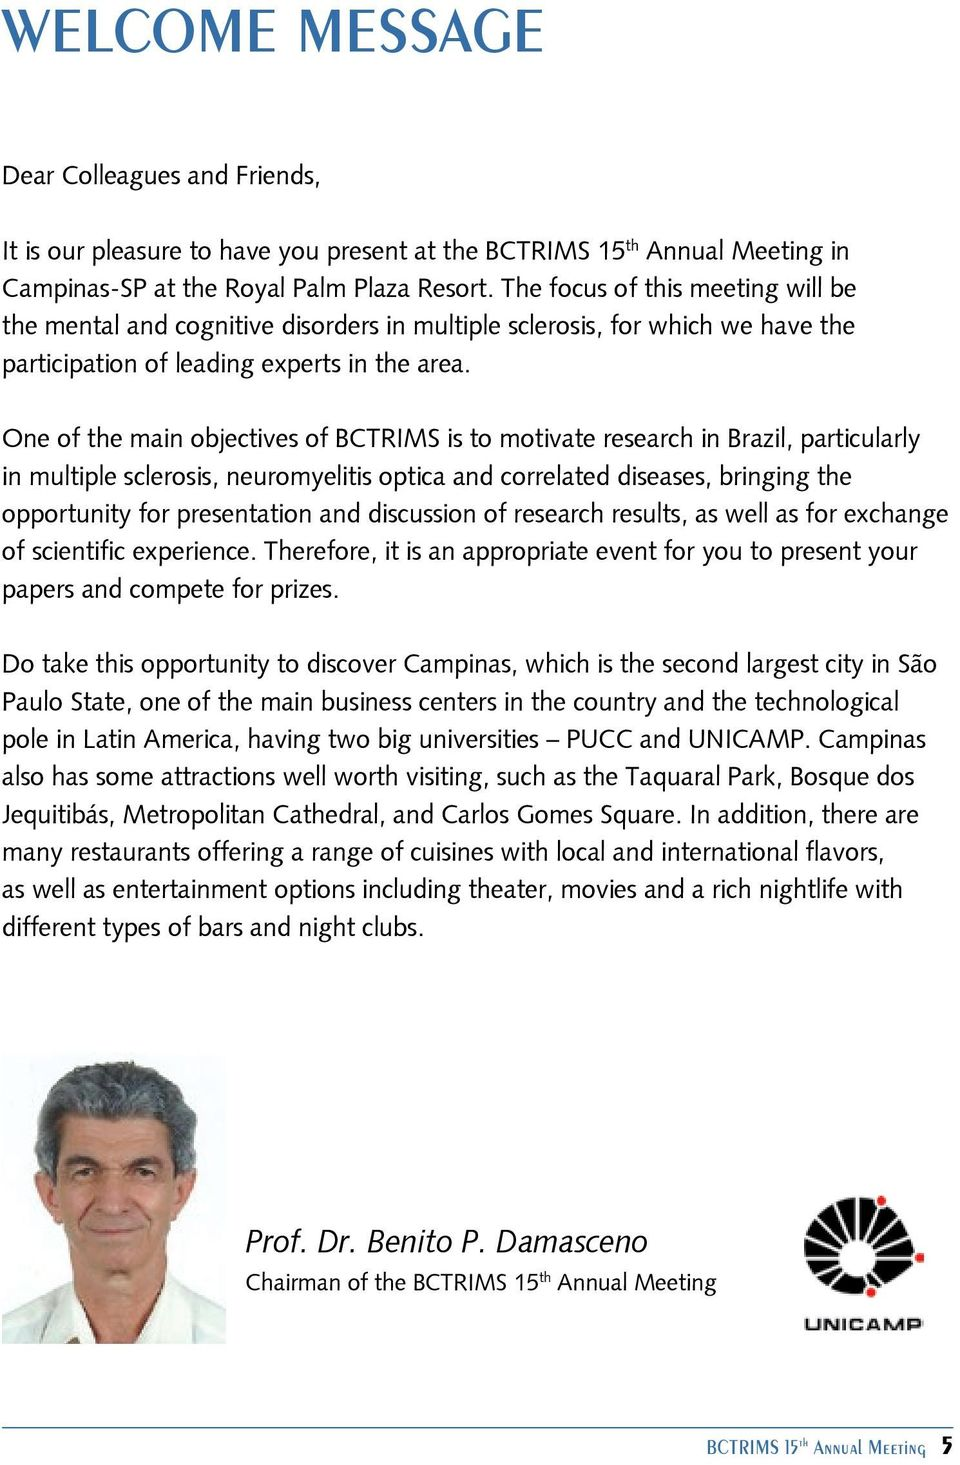 One of the main objectives of BCTRIMS is to motivate research in Brazil, particularly in multiple sclerosis, neuromyelitis optica and correlated diseases, bringing the opportunity for presentation